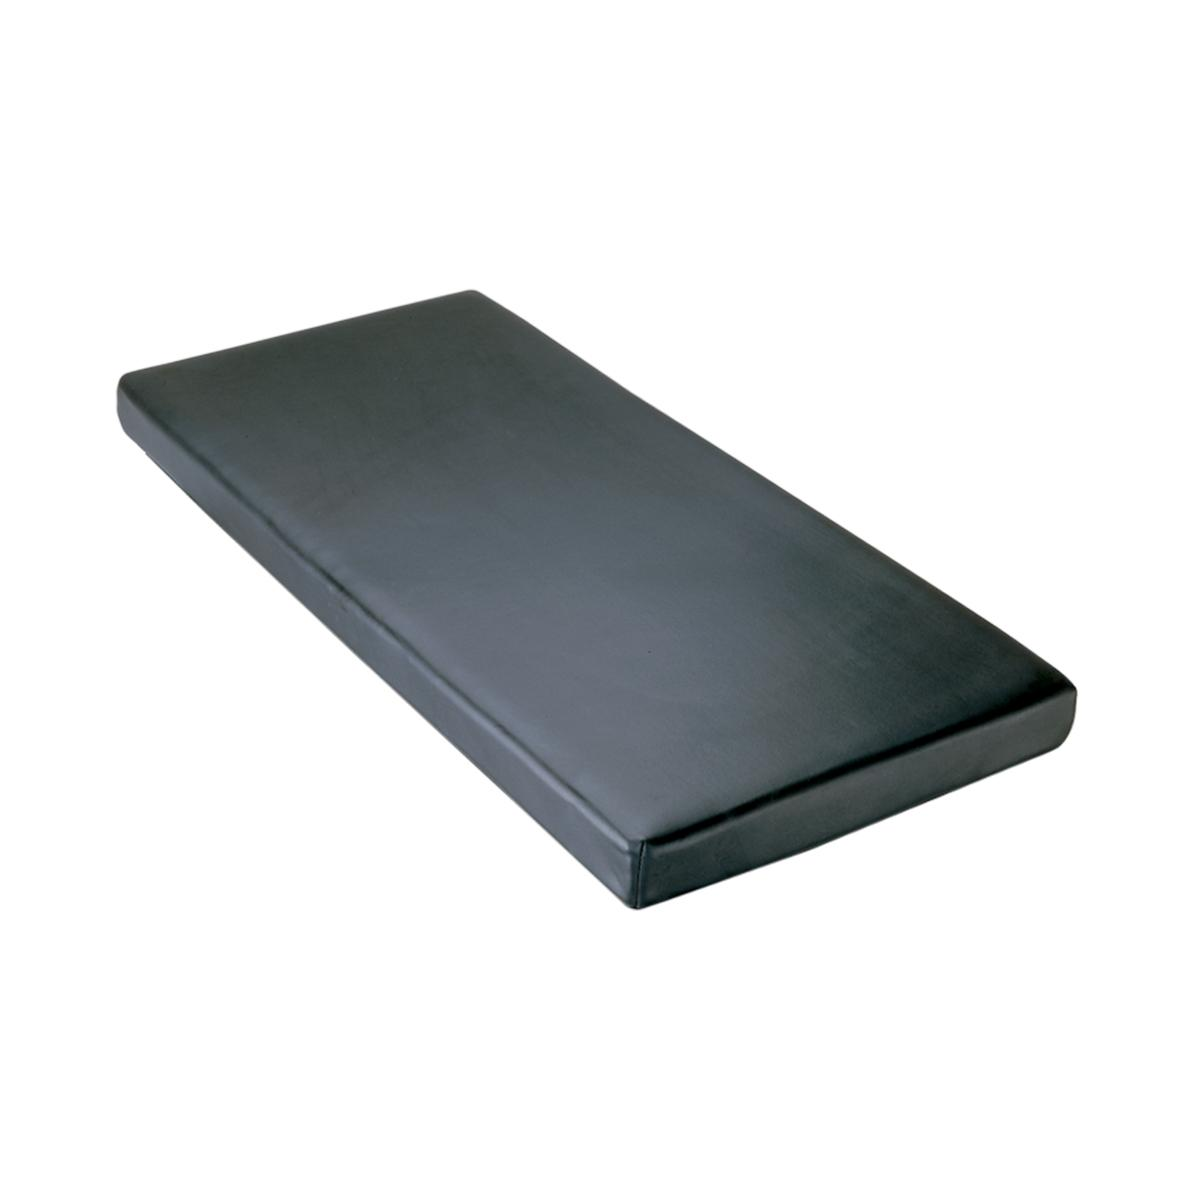 Basic Rectangular Table Pad, #O-AHTP, diagonal view